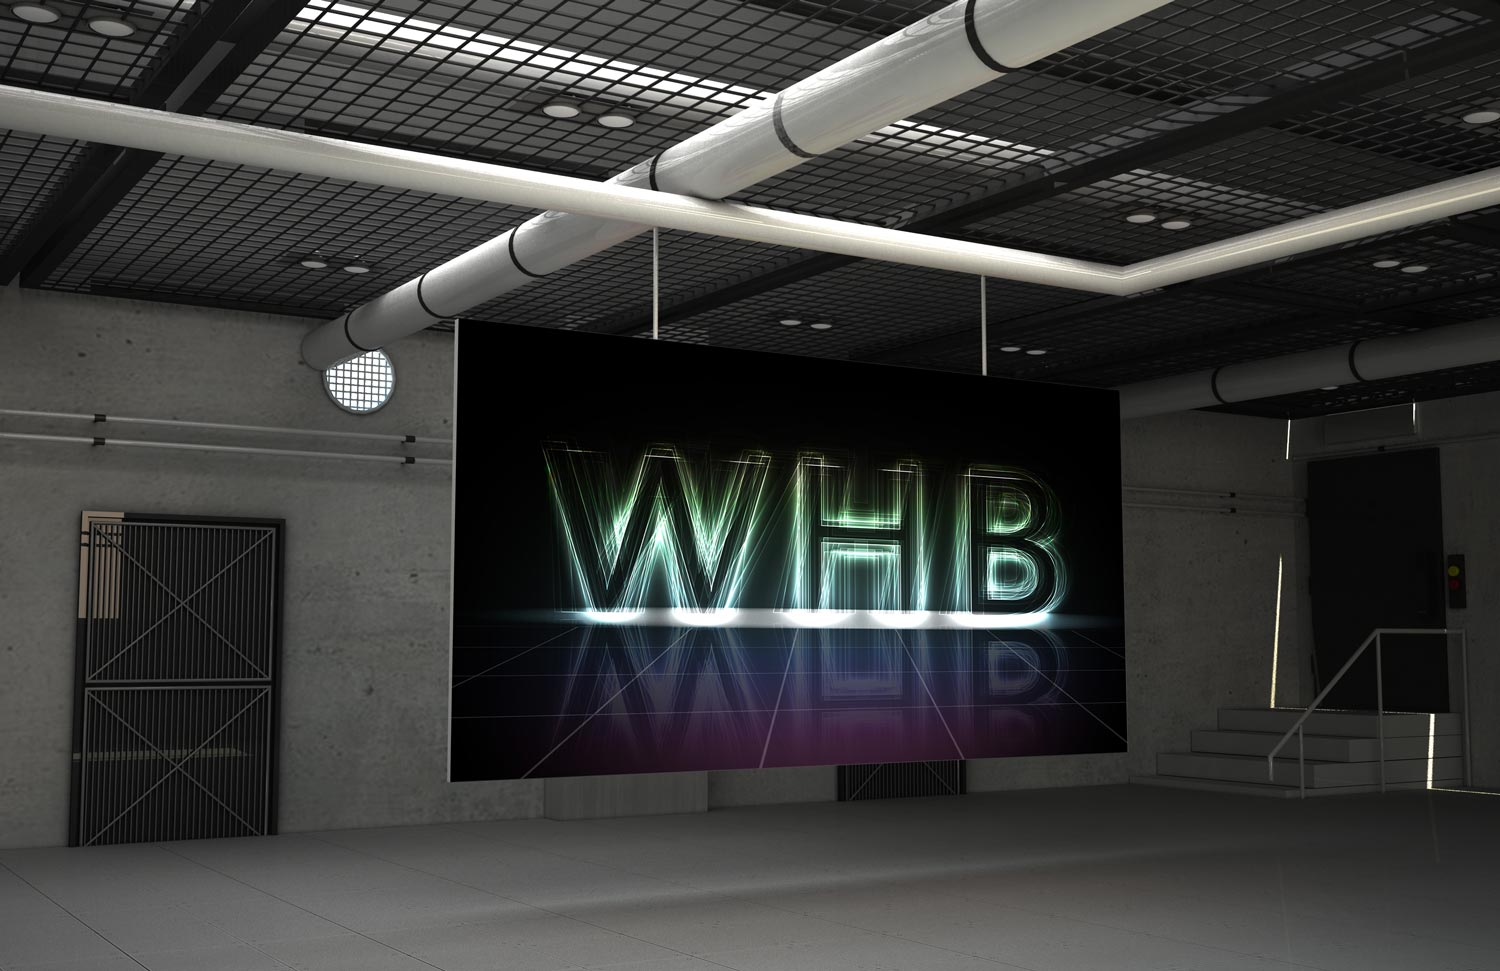 WHB letters